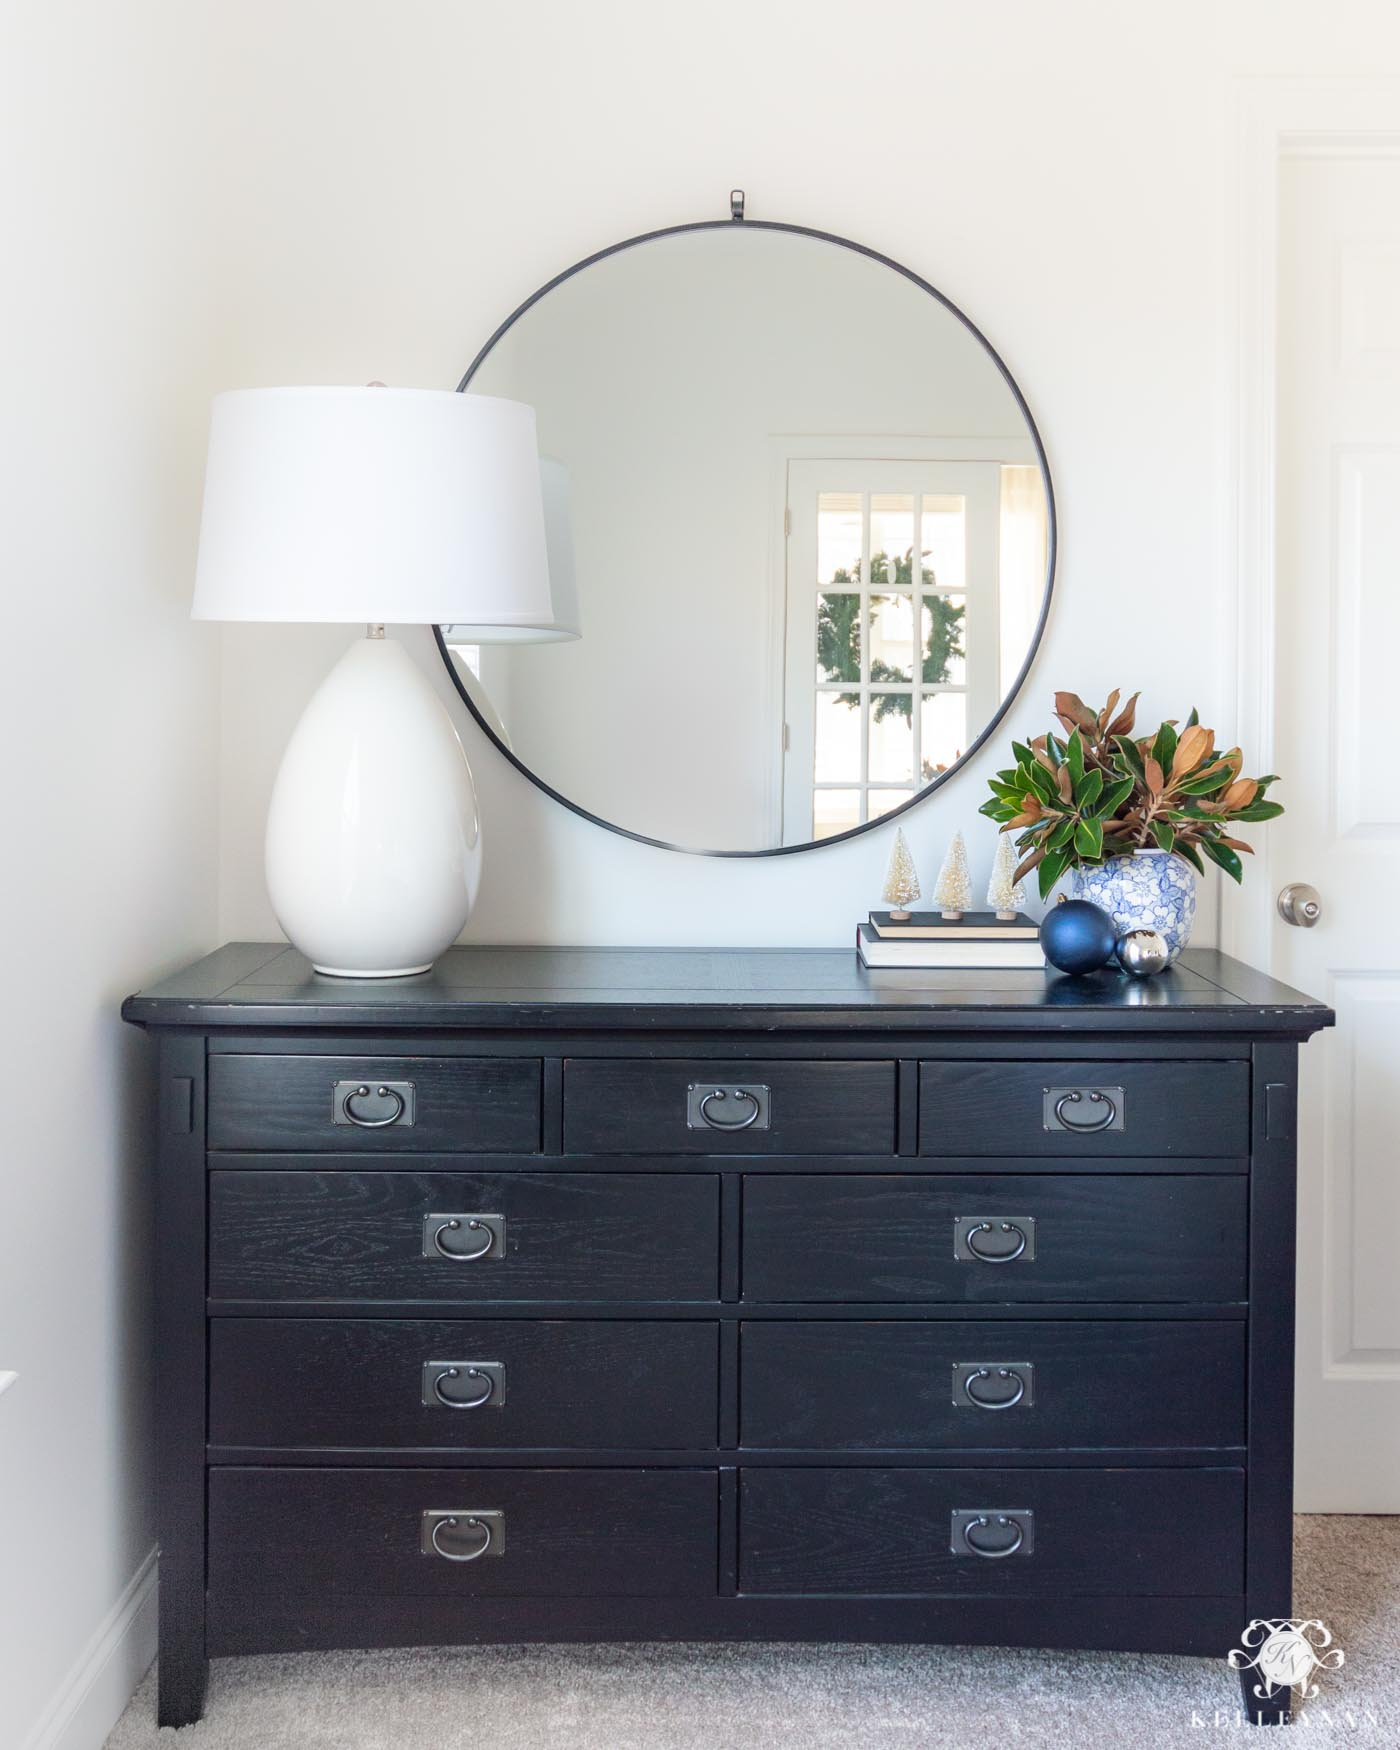 How to Style and Decorate a Bedroom Dresser